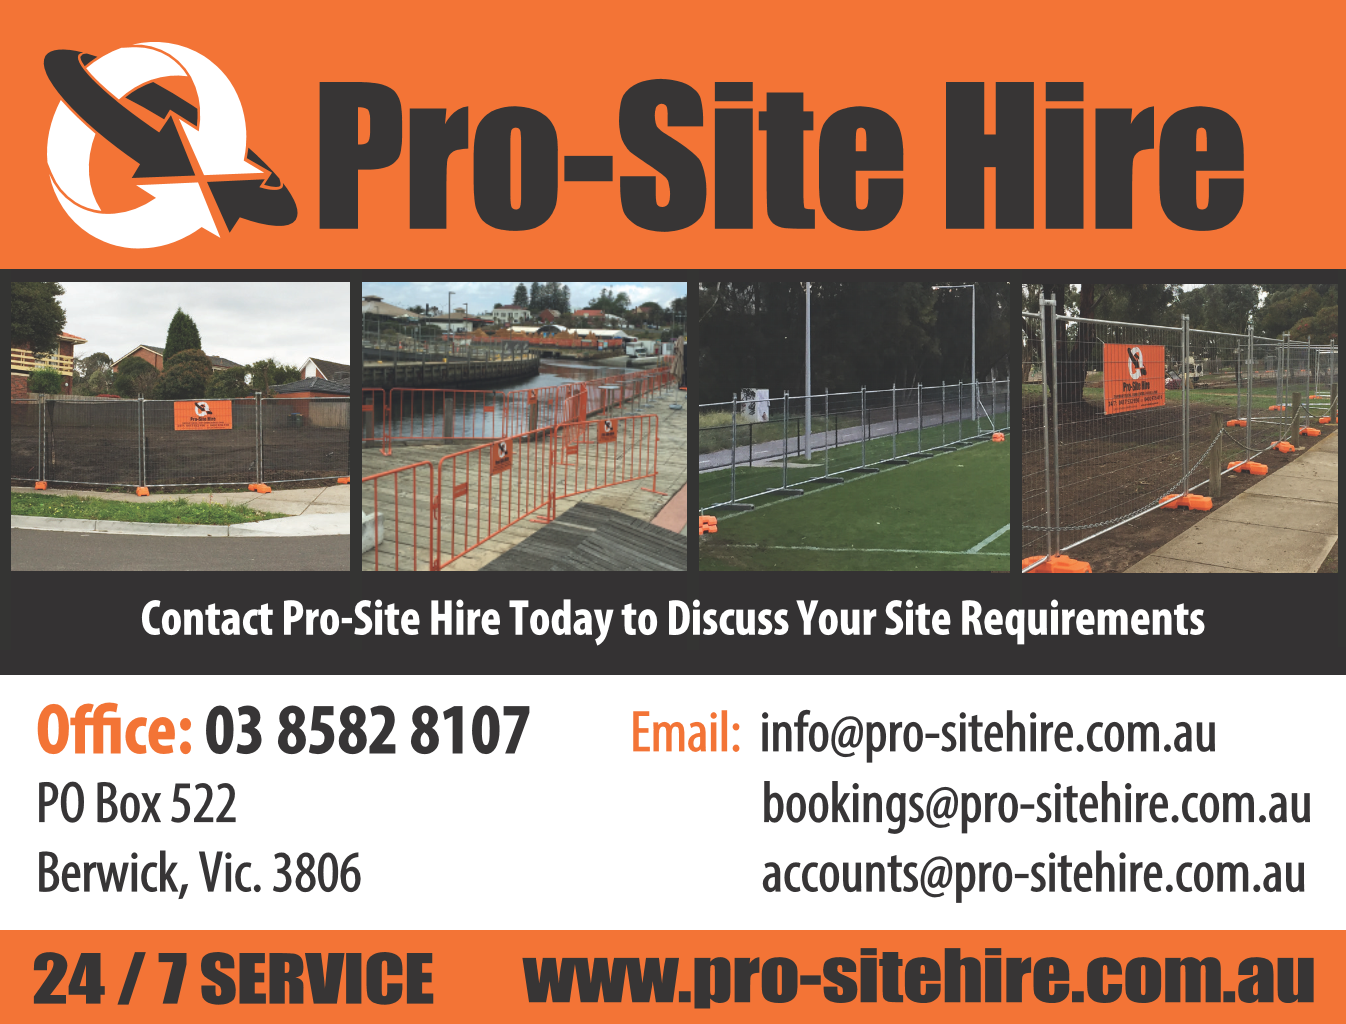 logo for sponsor Pro-Site Hire